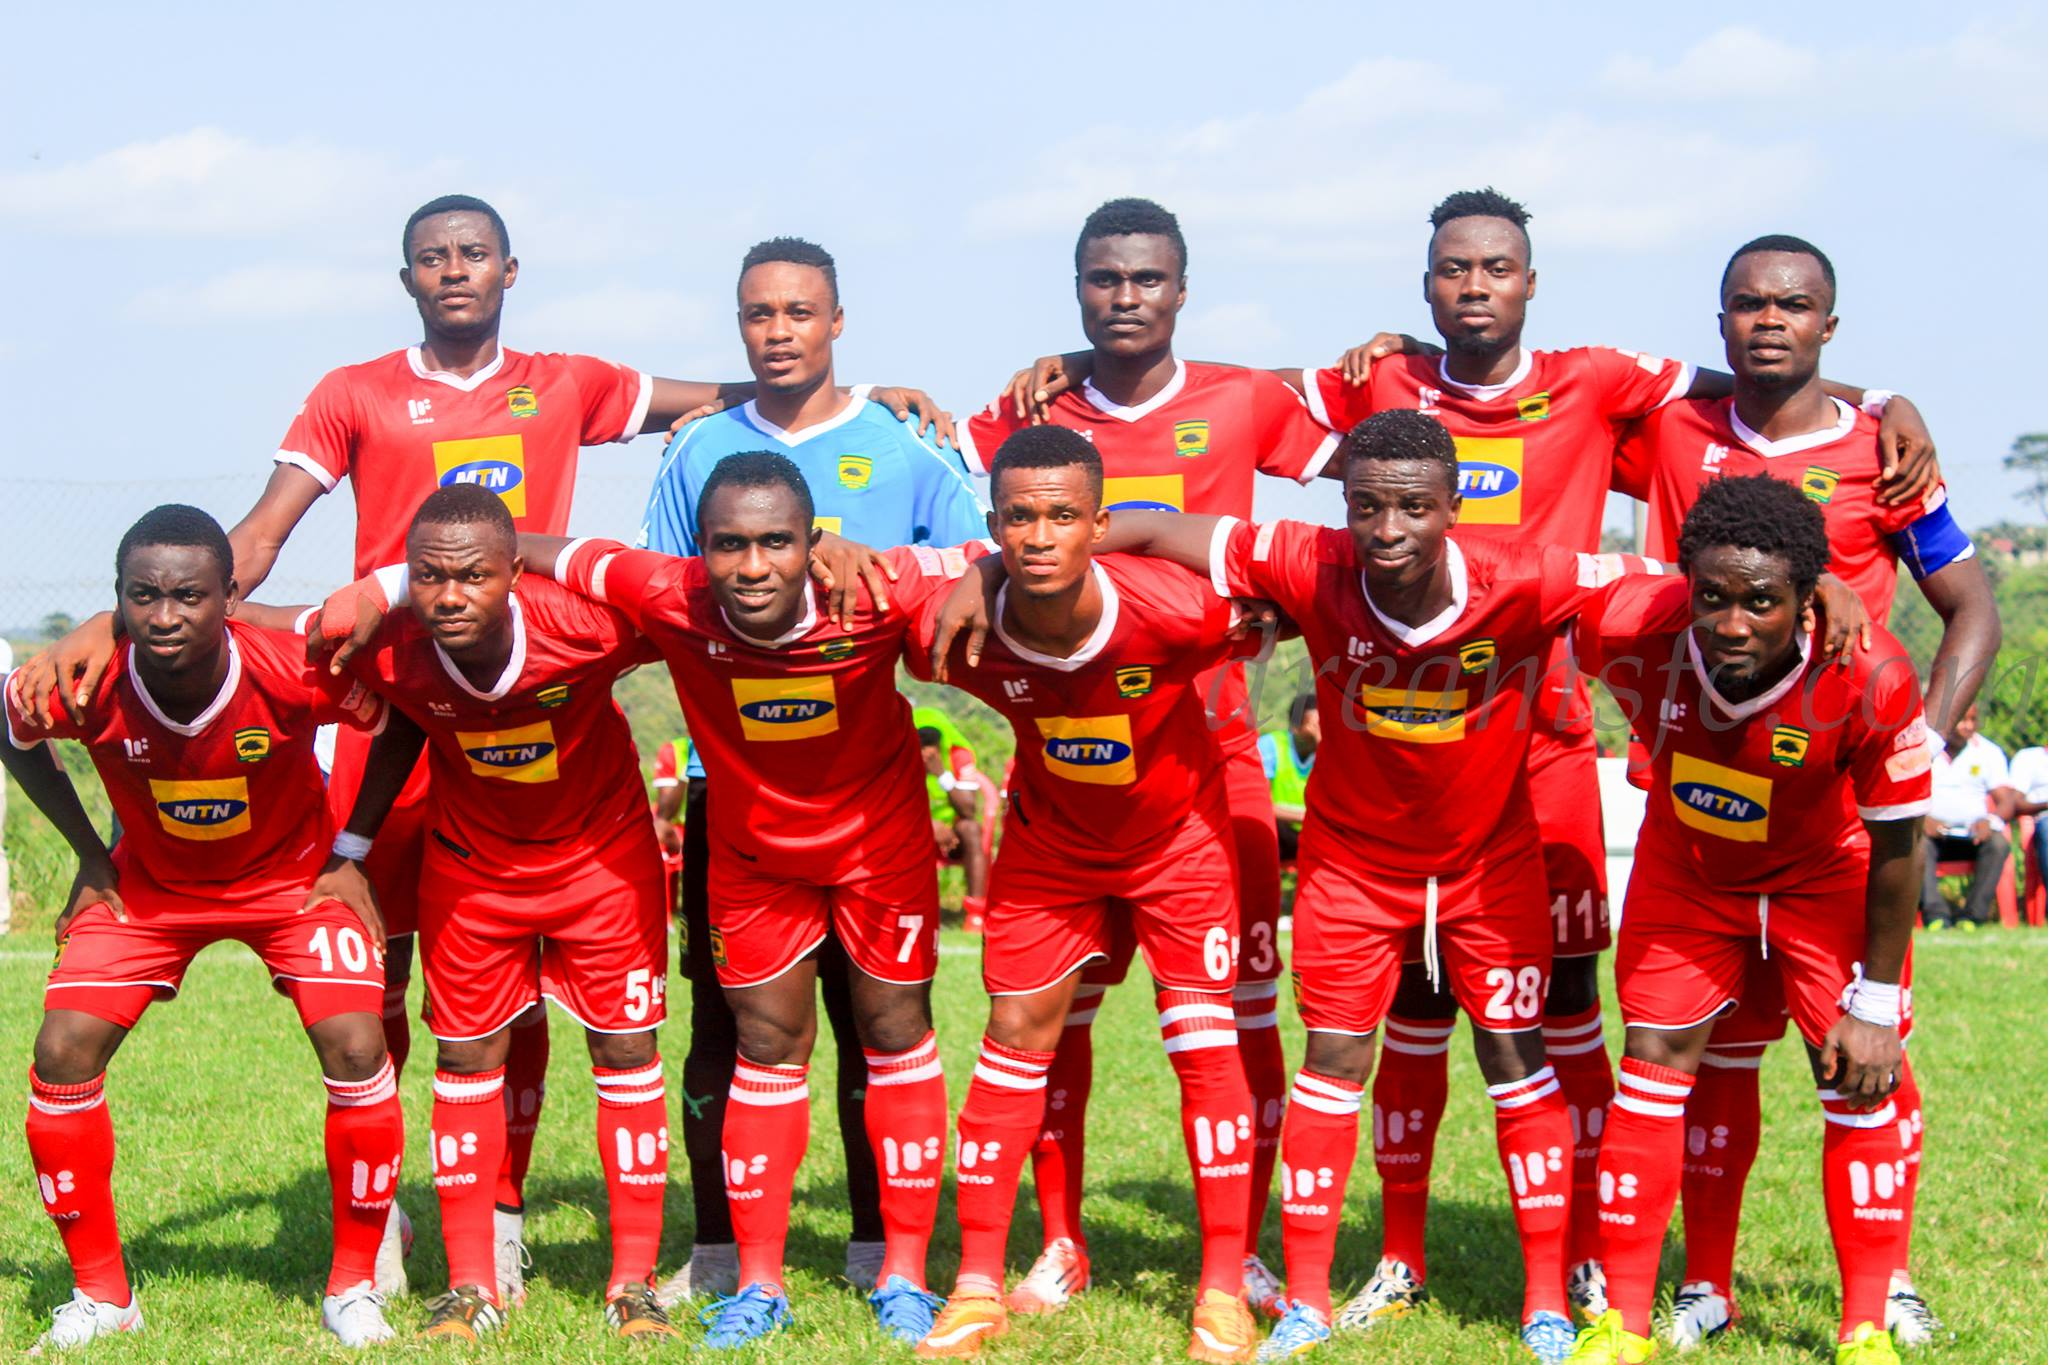 Asante Kotoko vs Hearts of Oak: Tantalizing derby clash on the bill in Kumasi